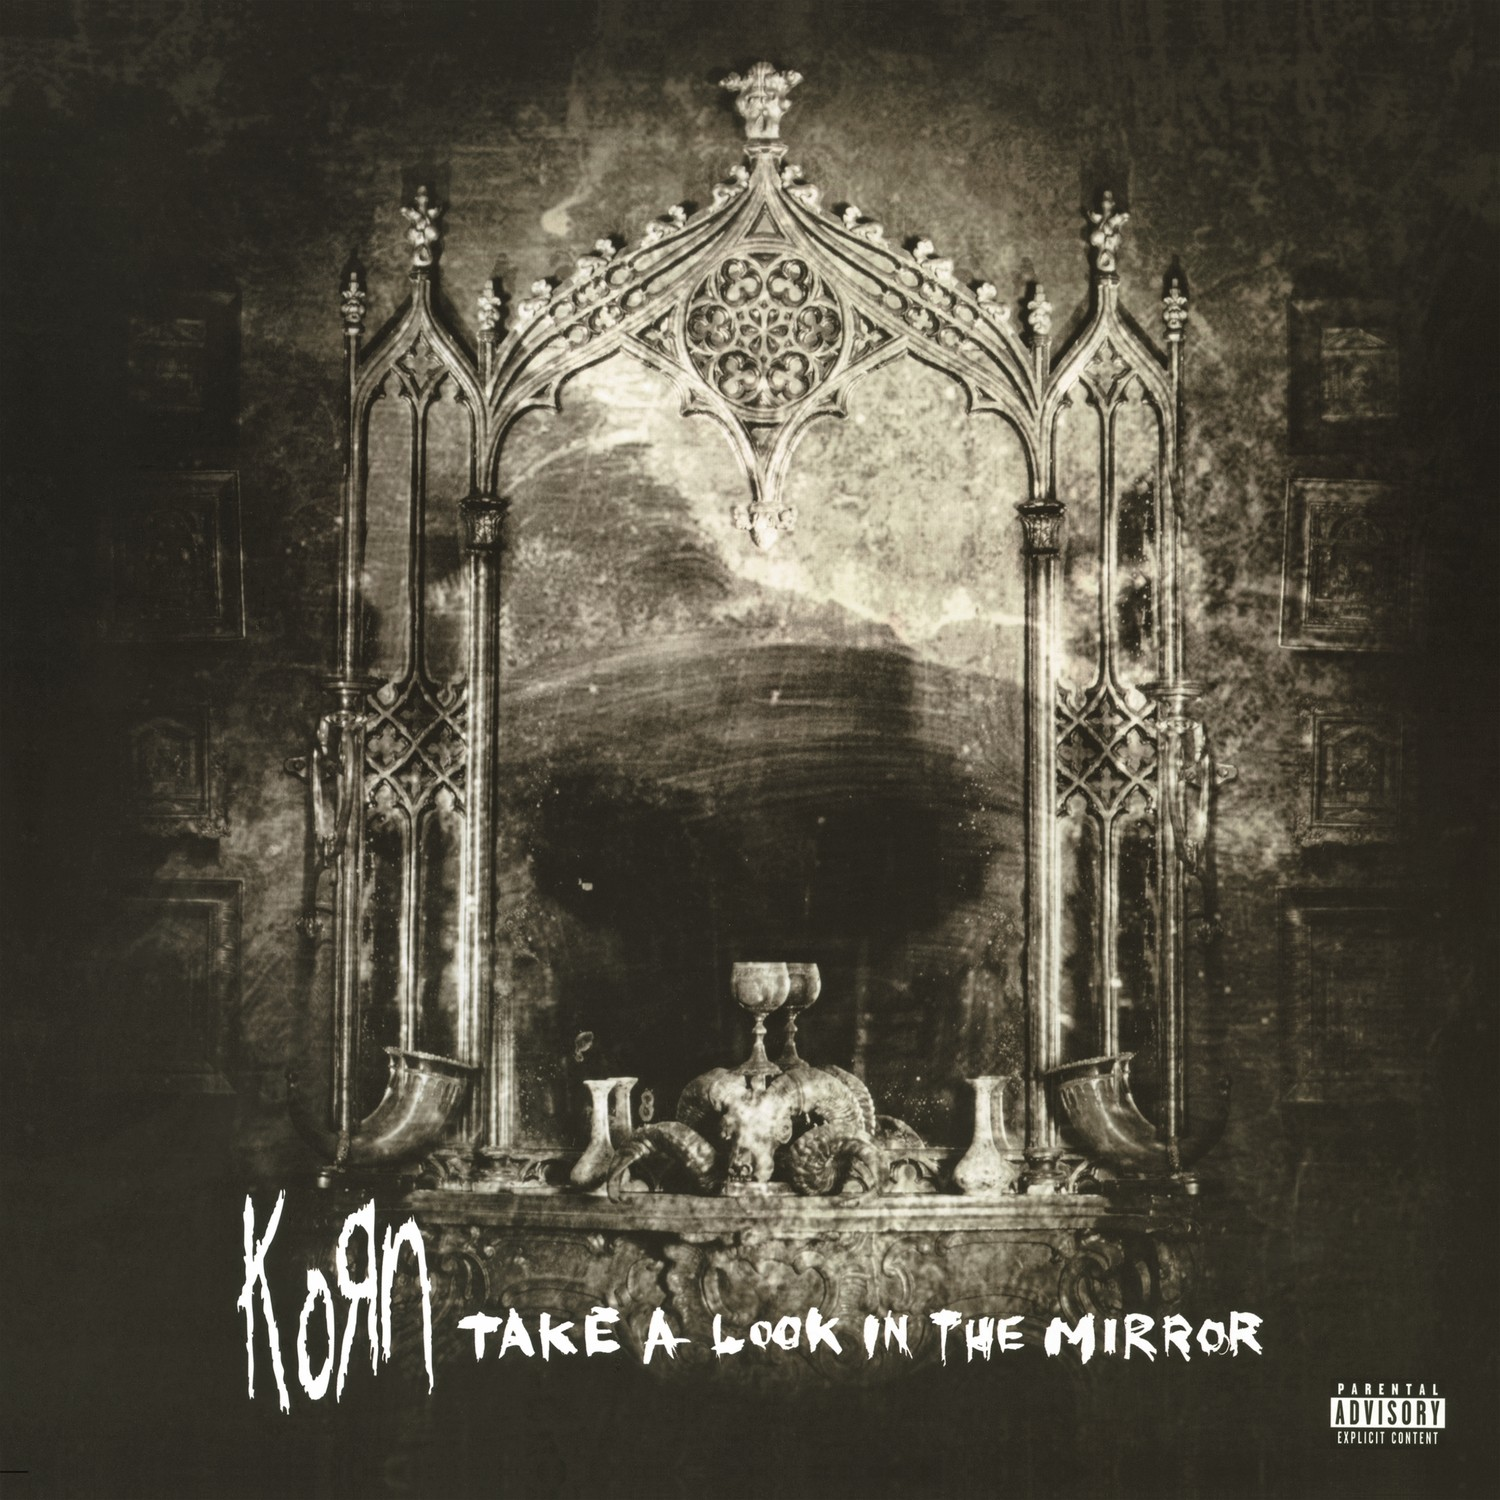 Korn - Take A Look In The Mirror 2XLP Vinyl